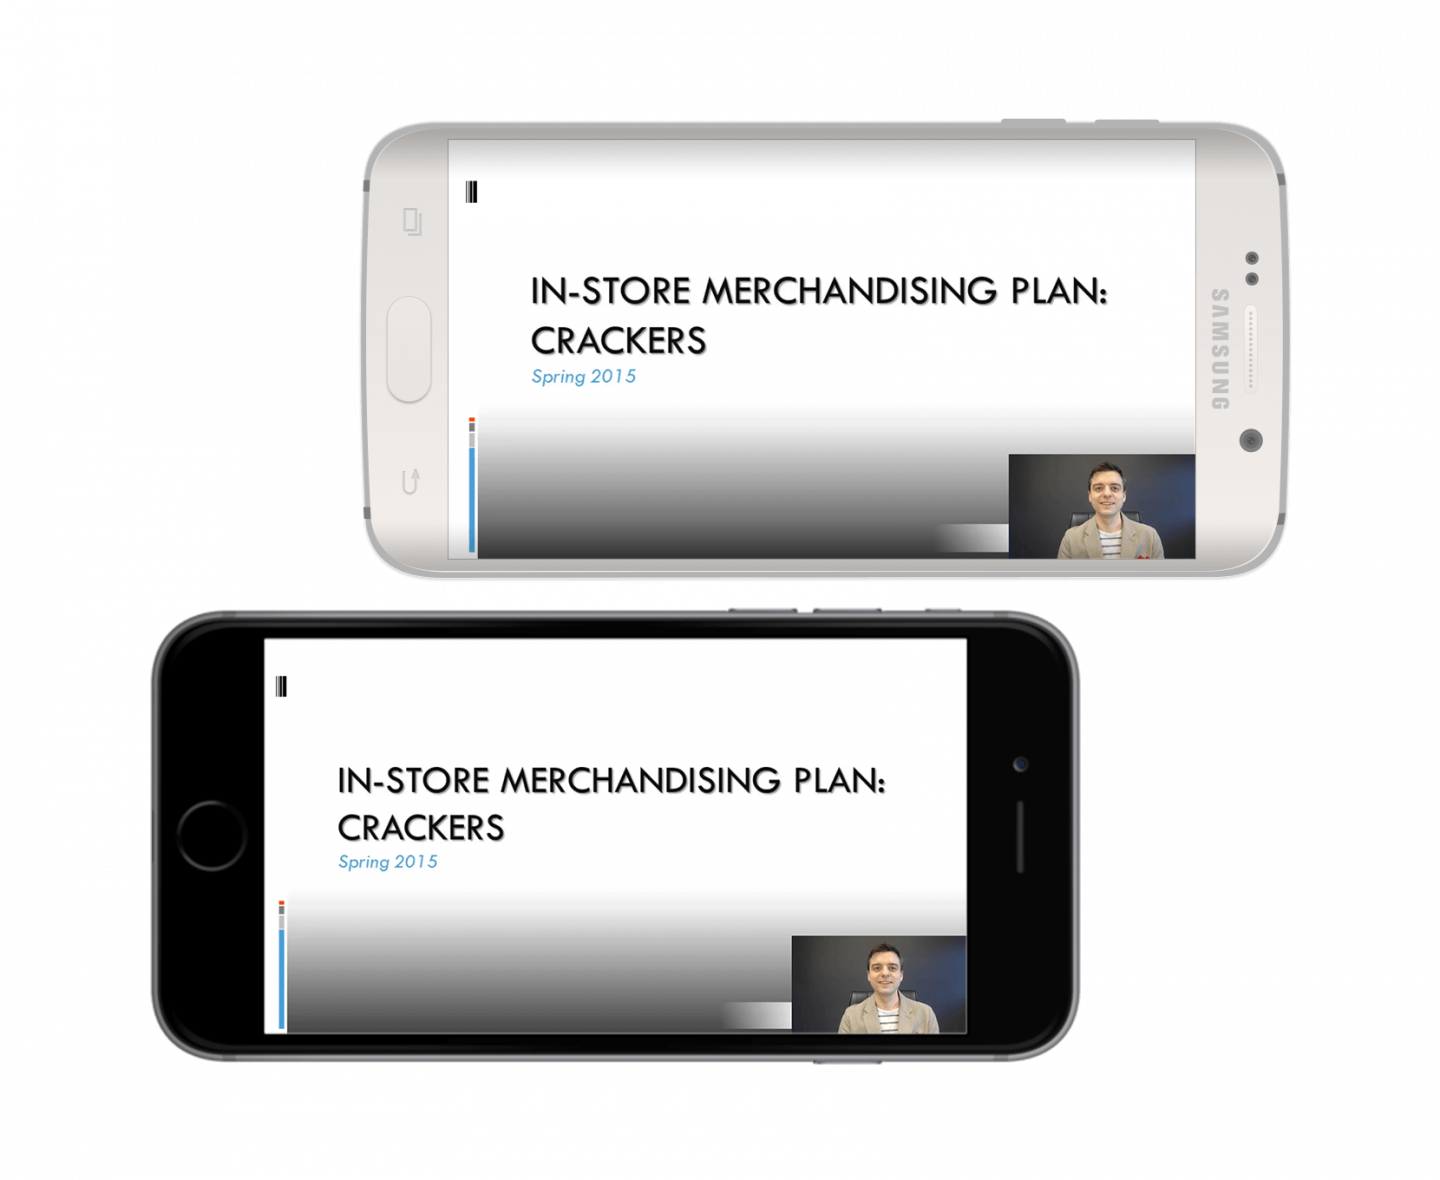 Panopto offers native mobile apps for both Android and IOS